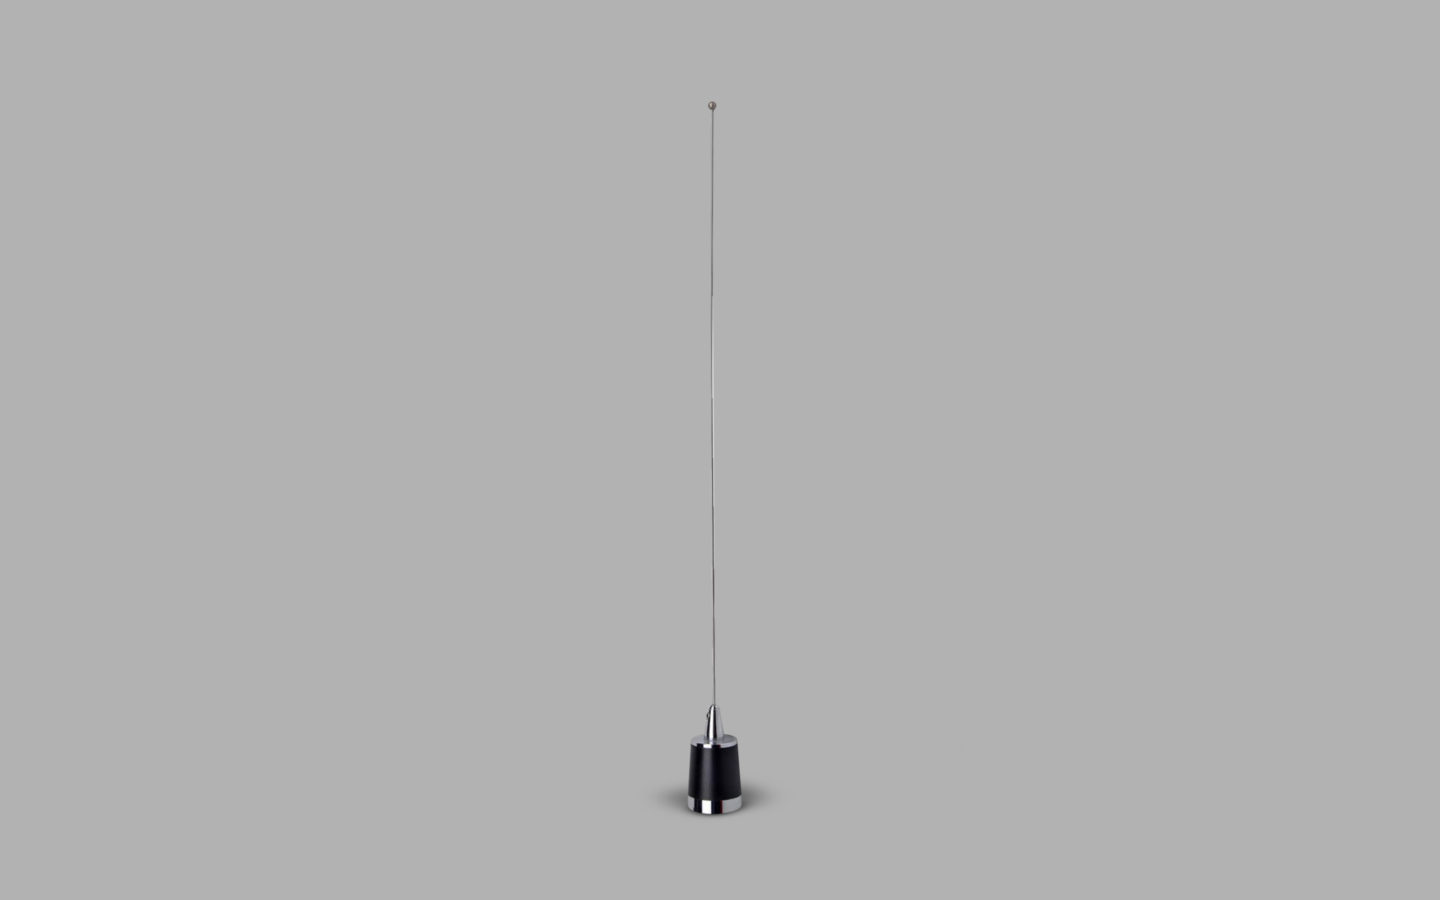 Best CB Antenna 8